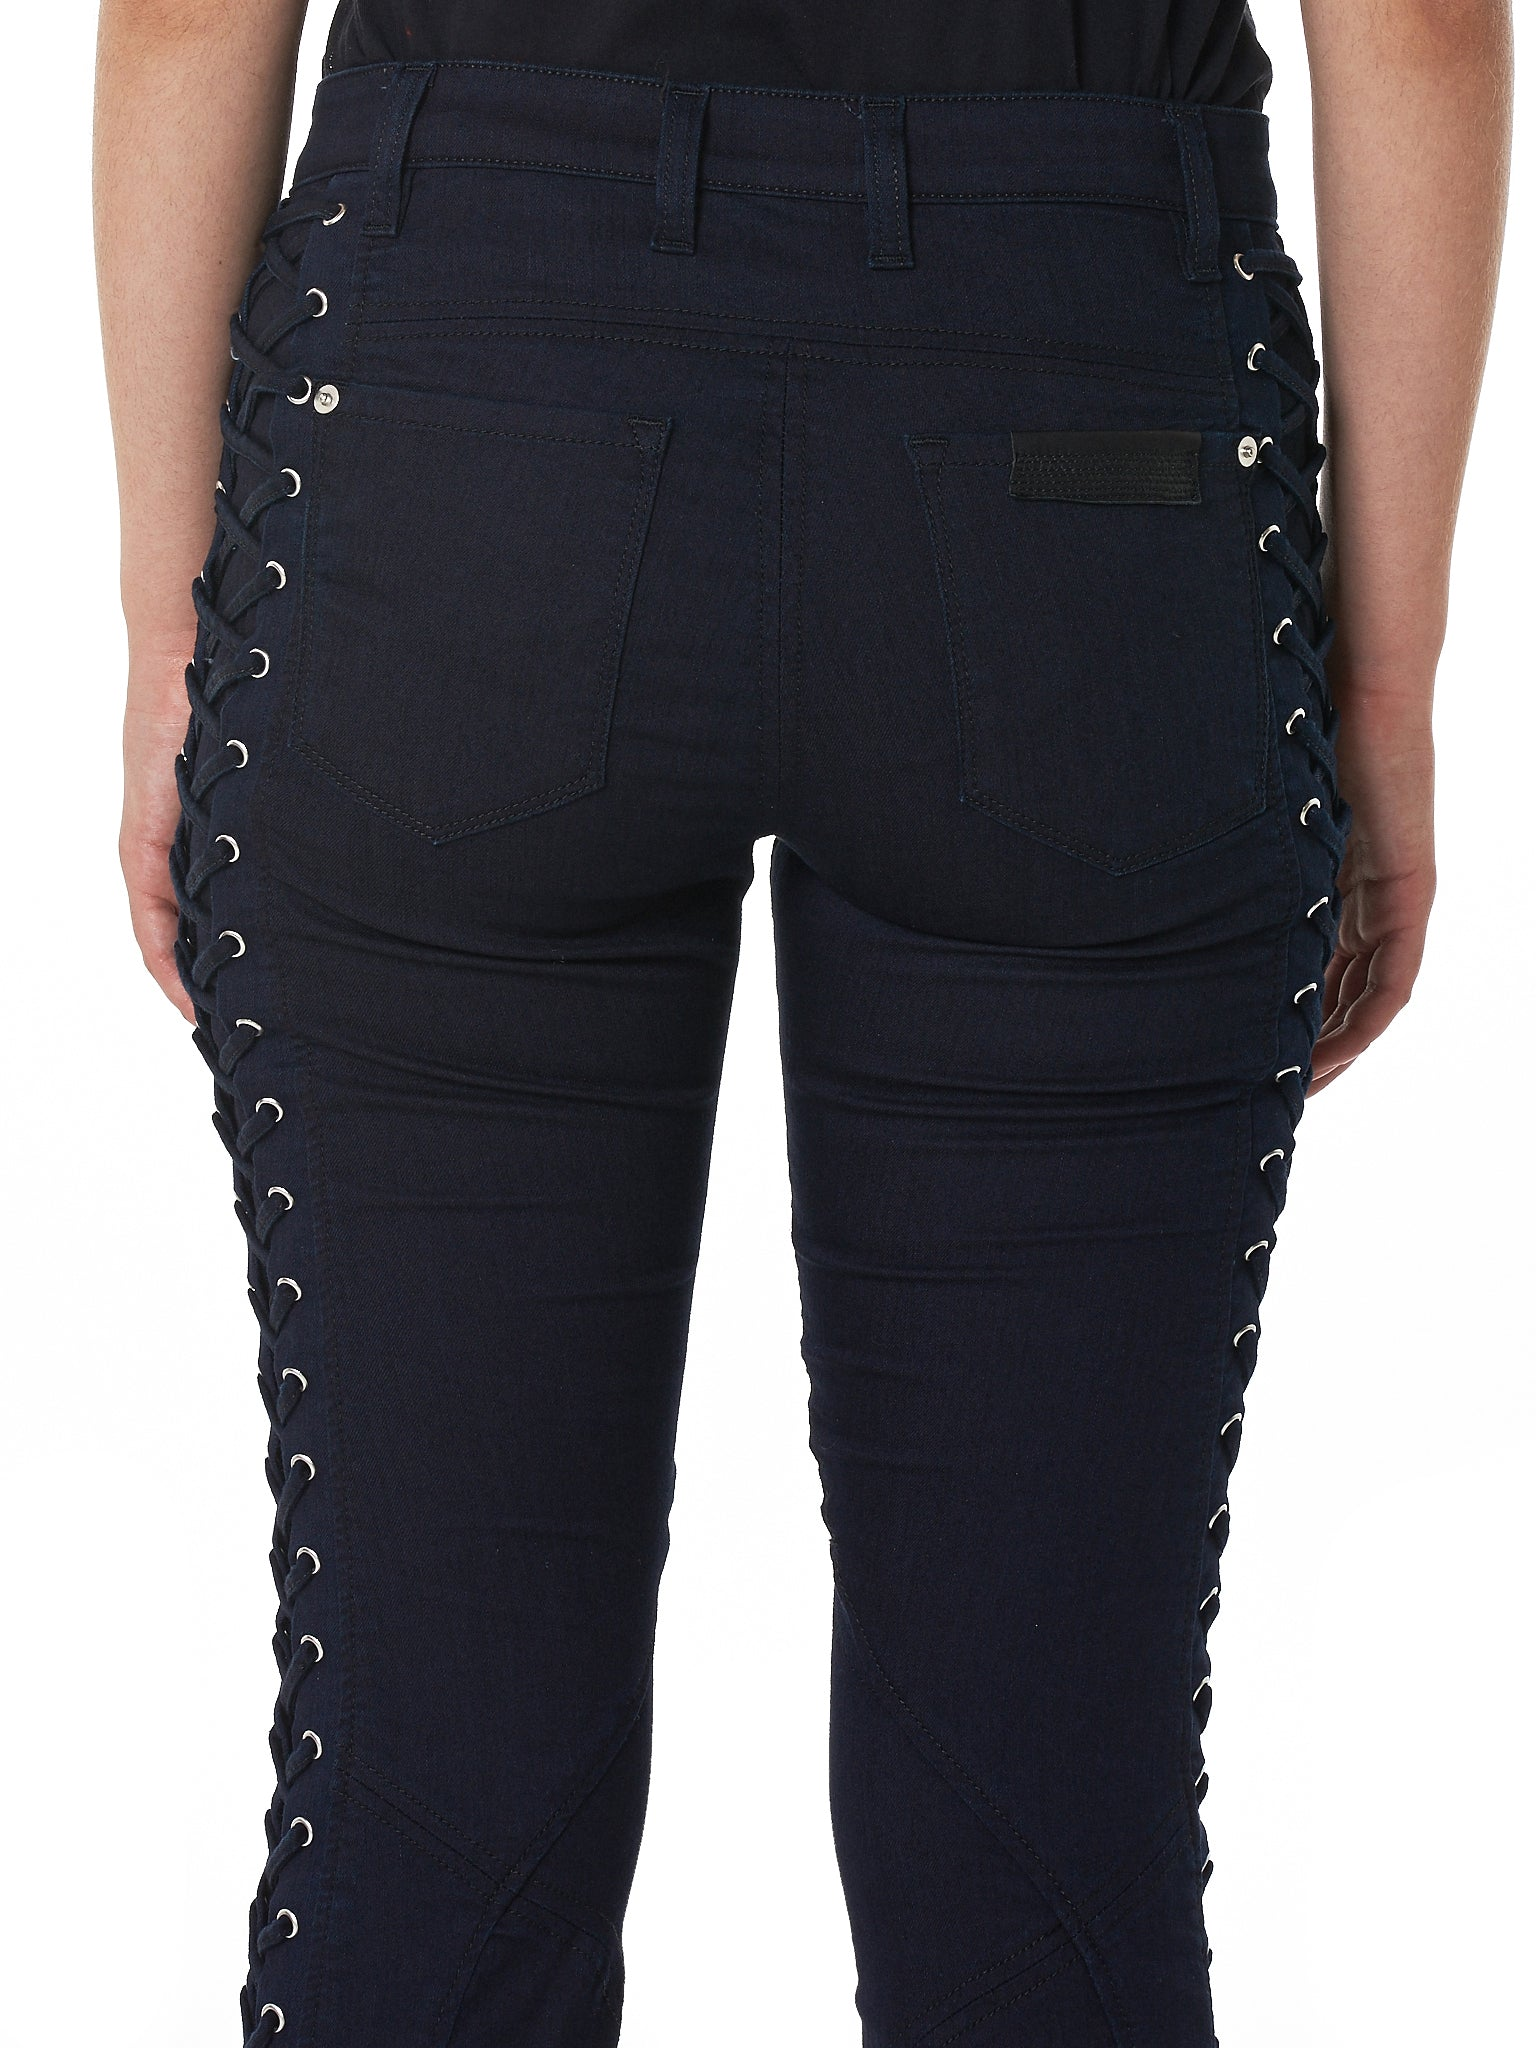 Faith Connexion Jeans - Hlorenzo Detail 1